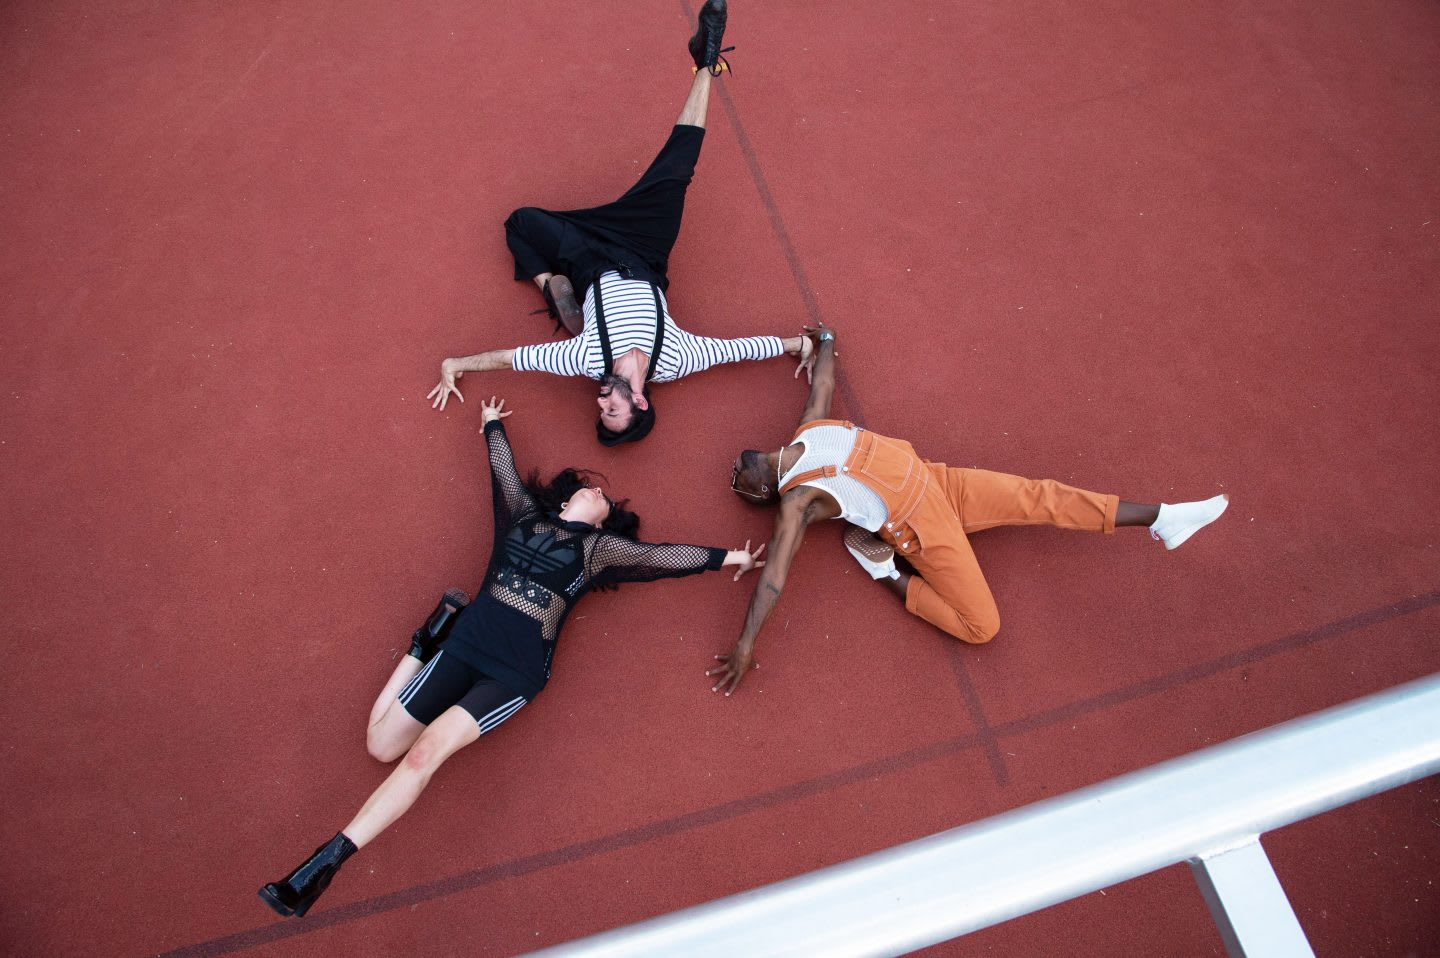 Two men and one woman lying on the ground with dramatic poses, voguing, vogue, photography, attitude, posing, adidas, employees, confidence, GamePlan A